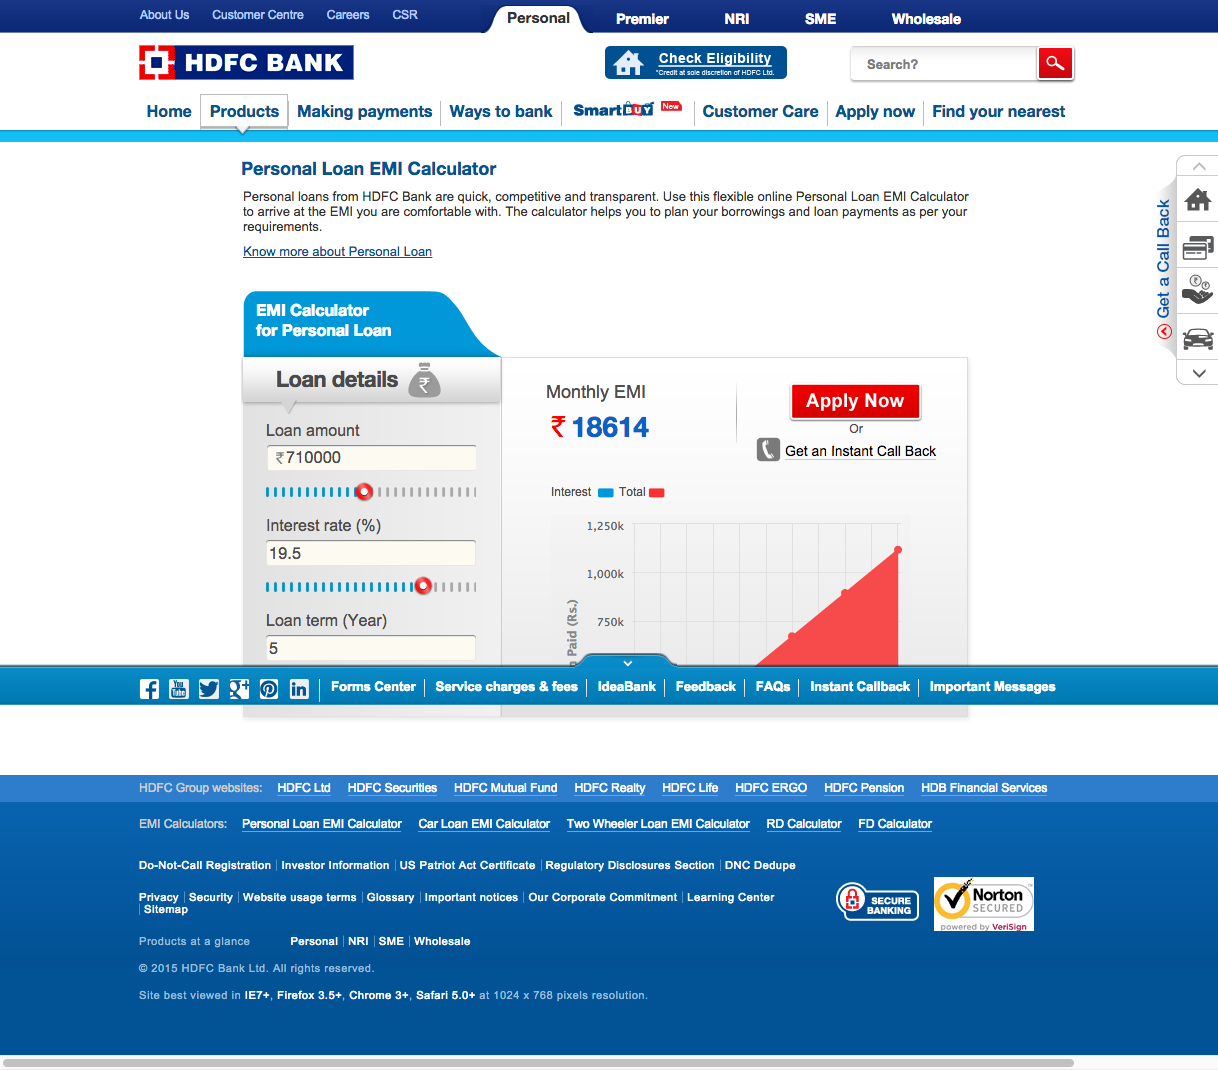 Http Www Hdfcbank Com Personal Personal Loan Emi Calculator Personal Loans How To Apply Finding Yourself